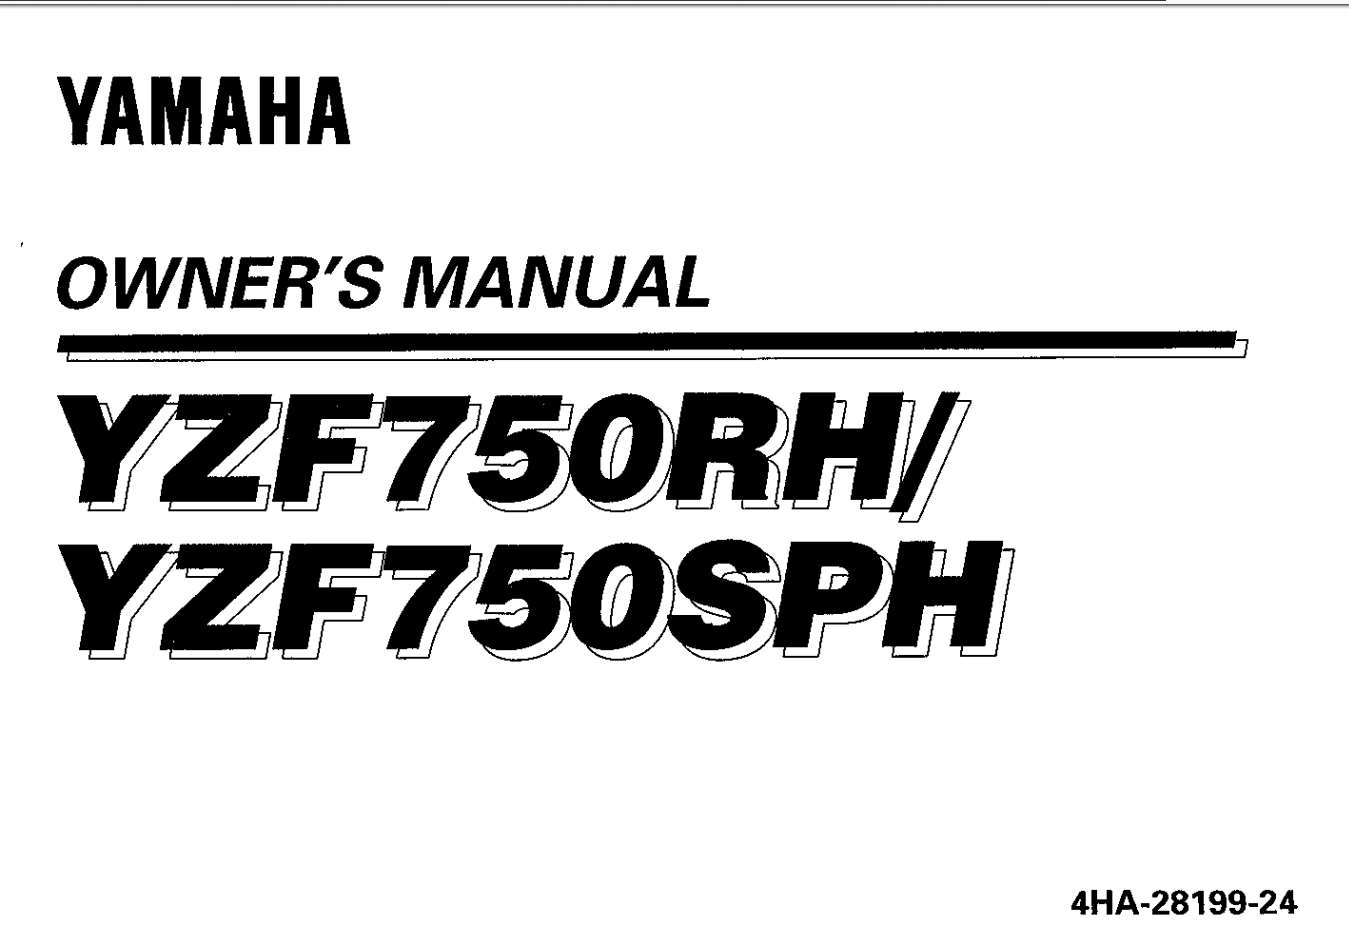 Yamaha YZF750RH YZF750SPH 1996 Owner's Manual